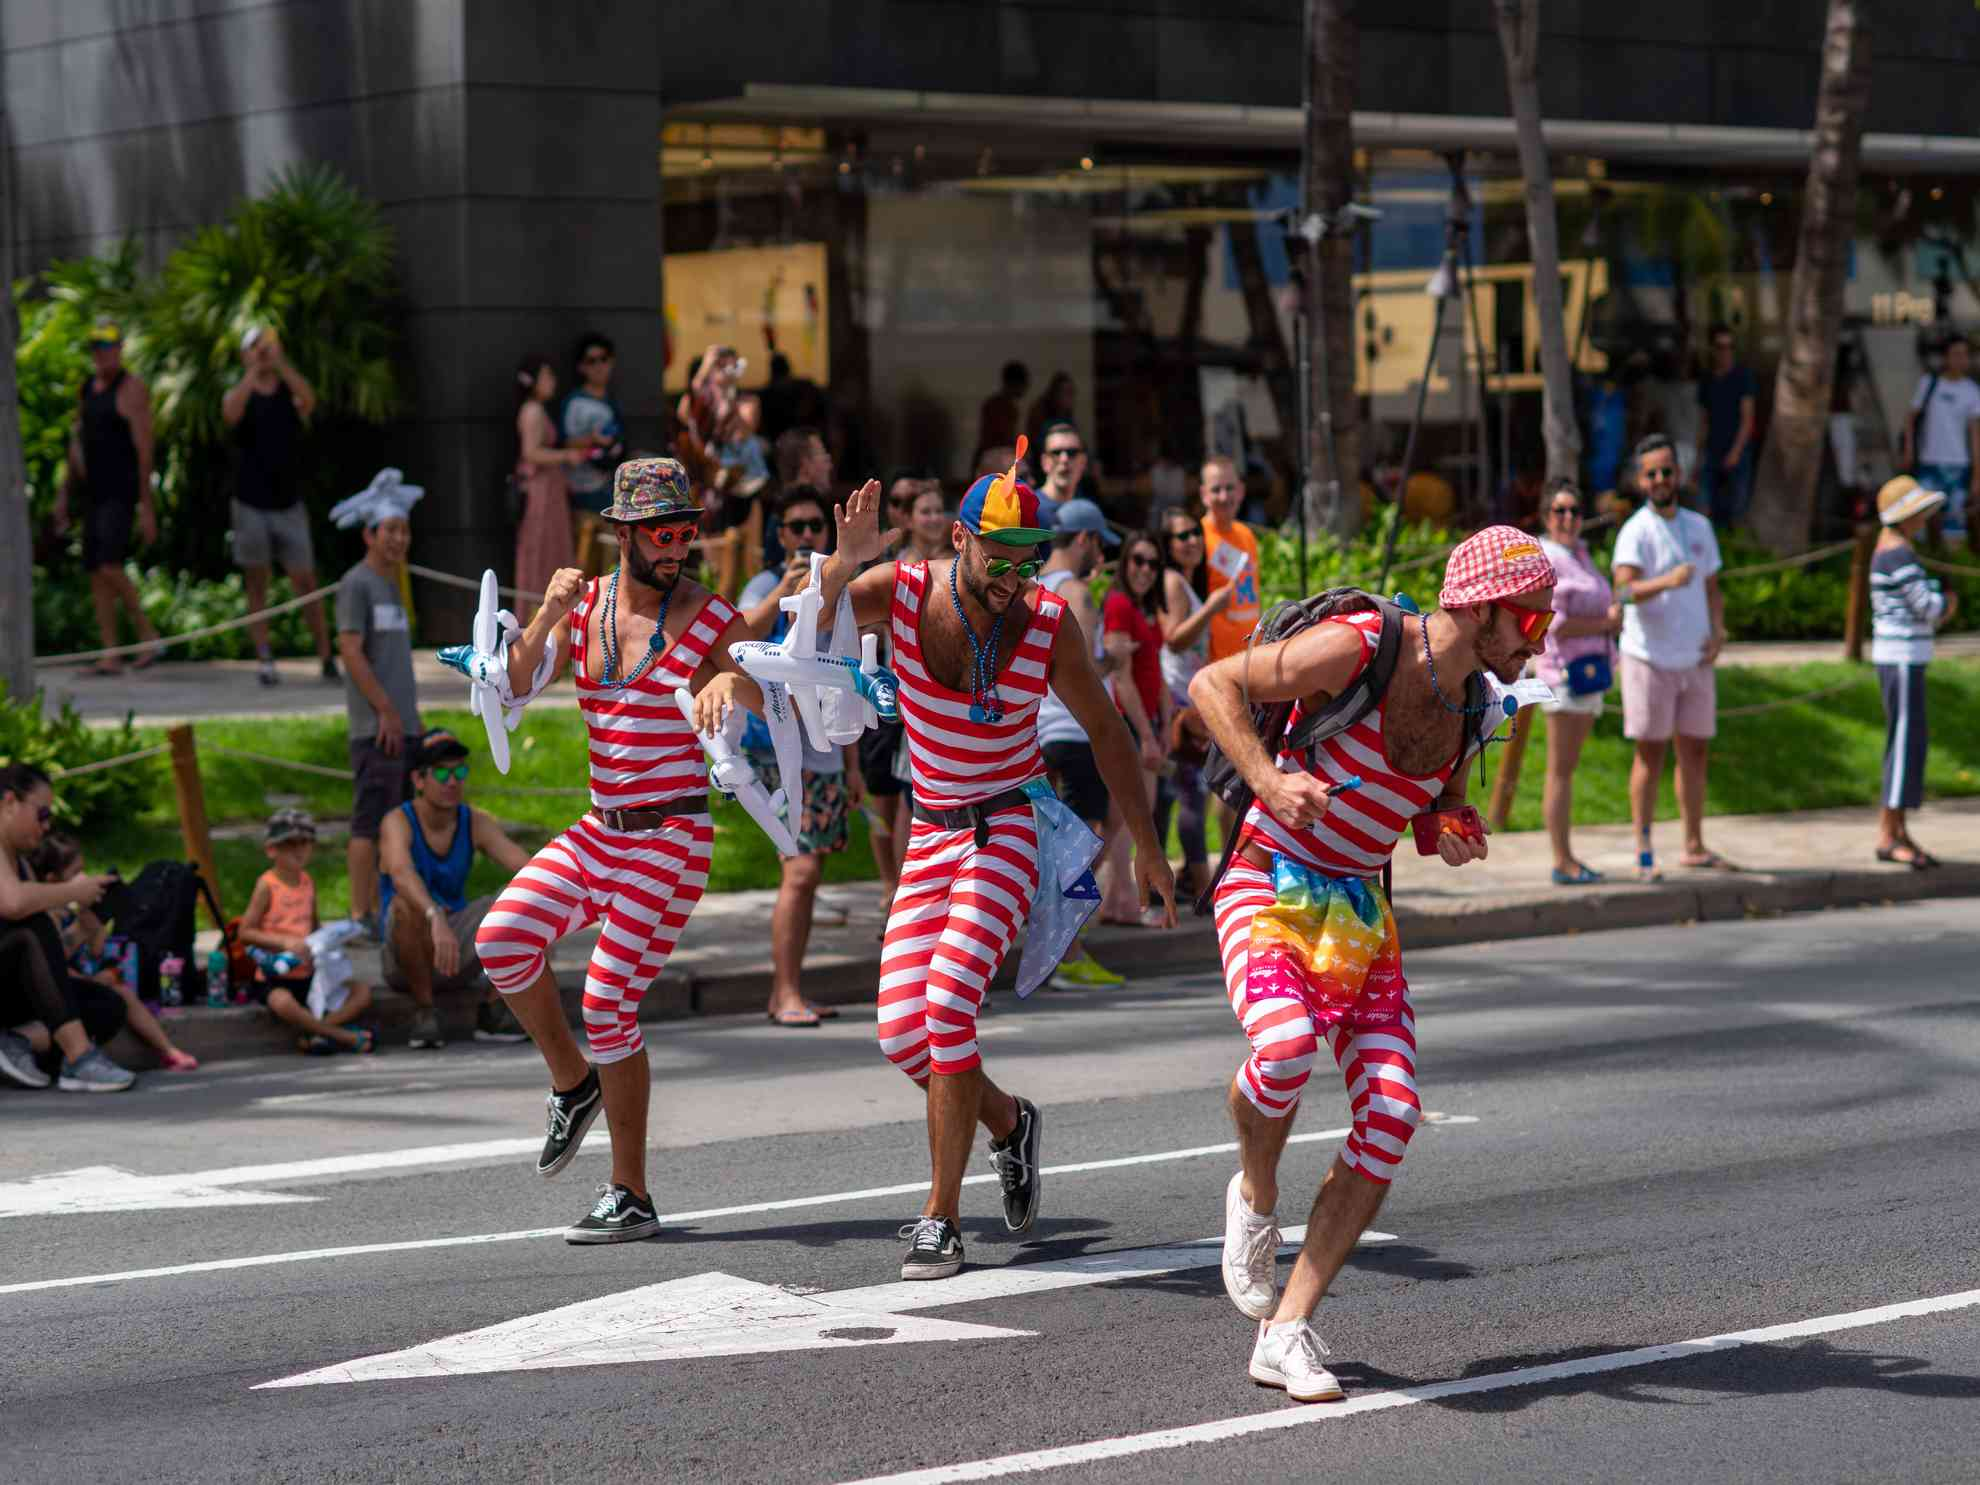 A parade in downtown waikiki always Things To Do on Oahu